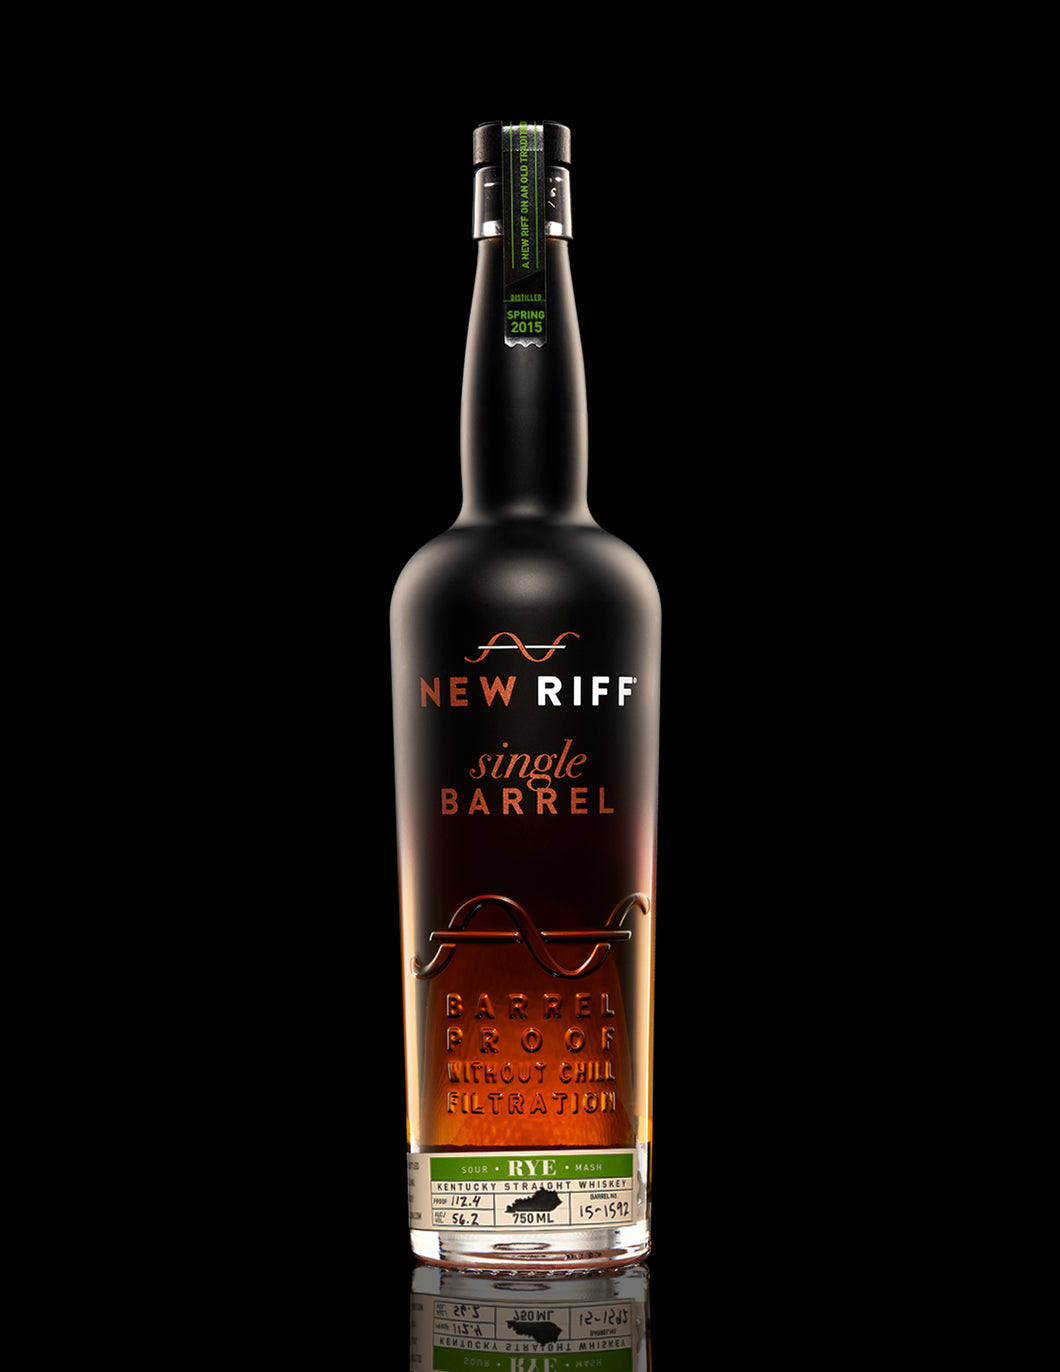 Single Barrel Rye - Barrel 15-2767